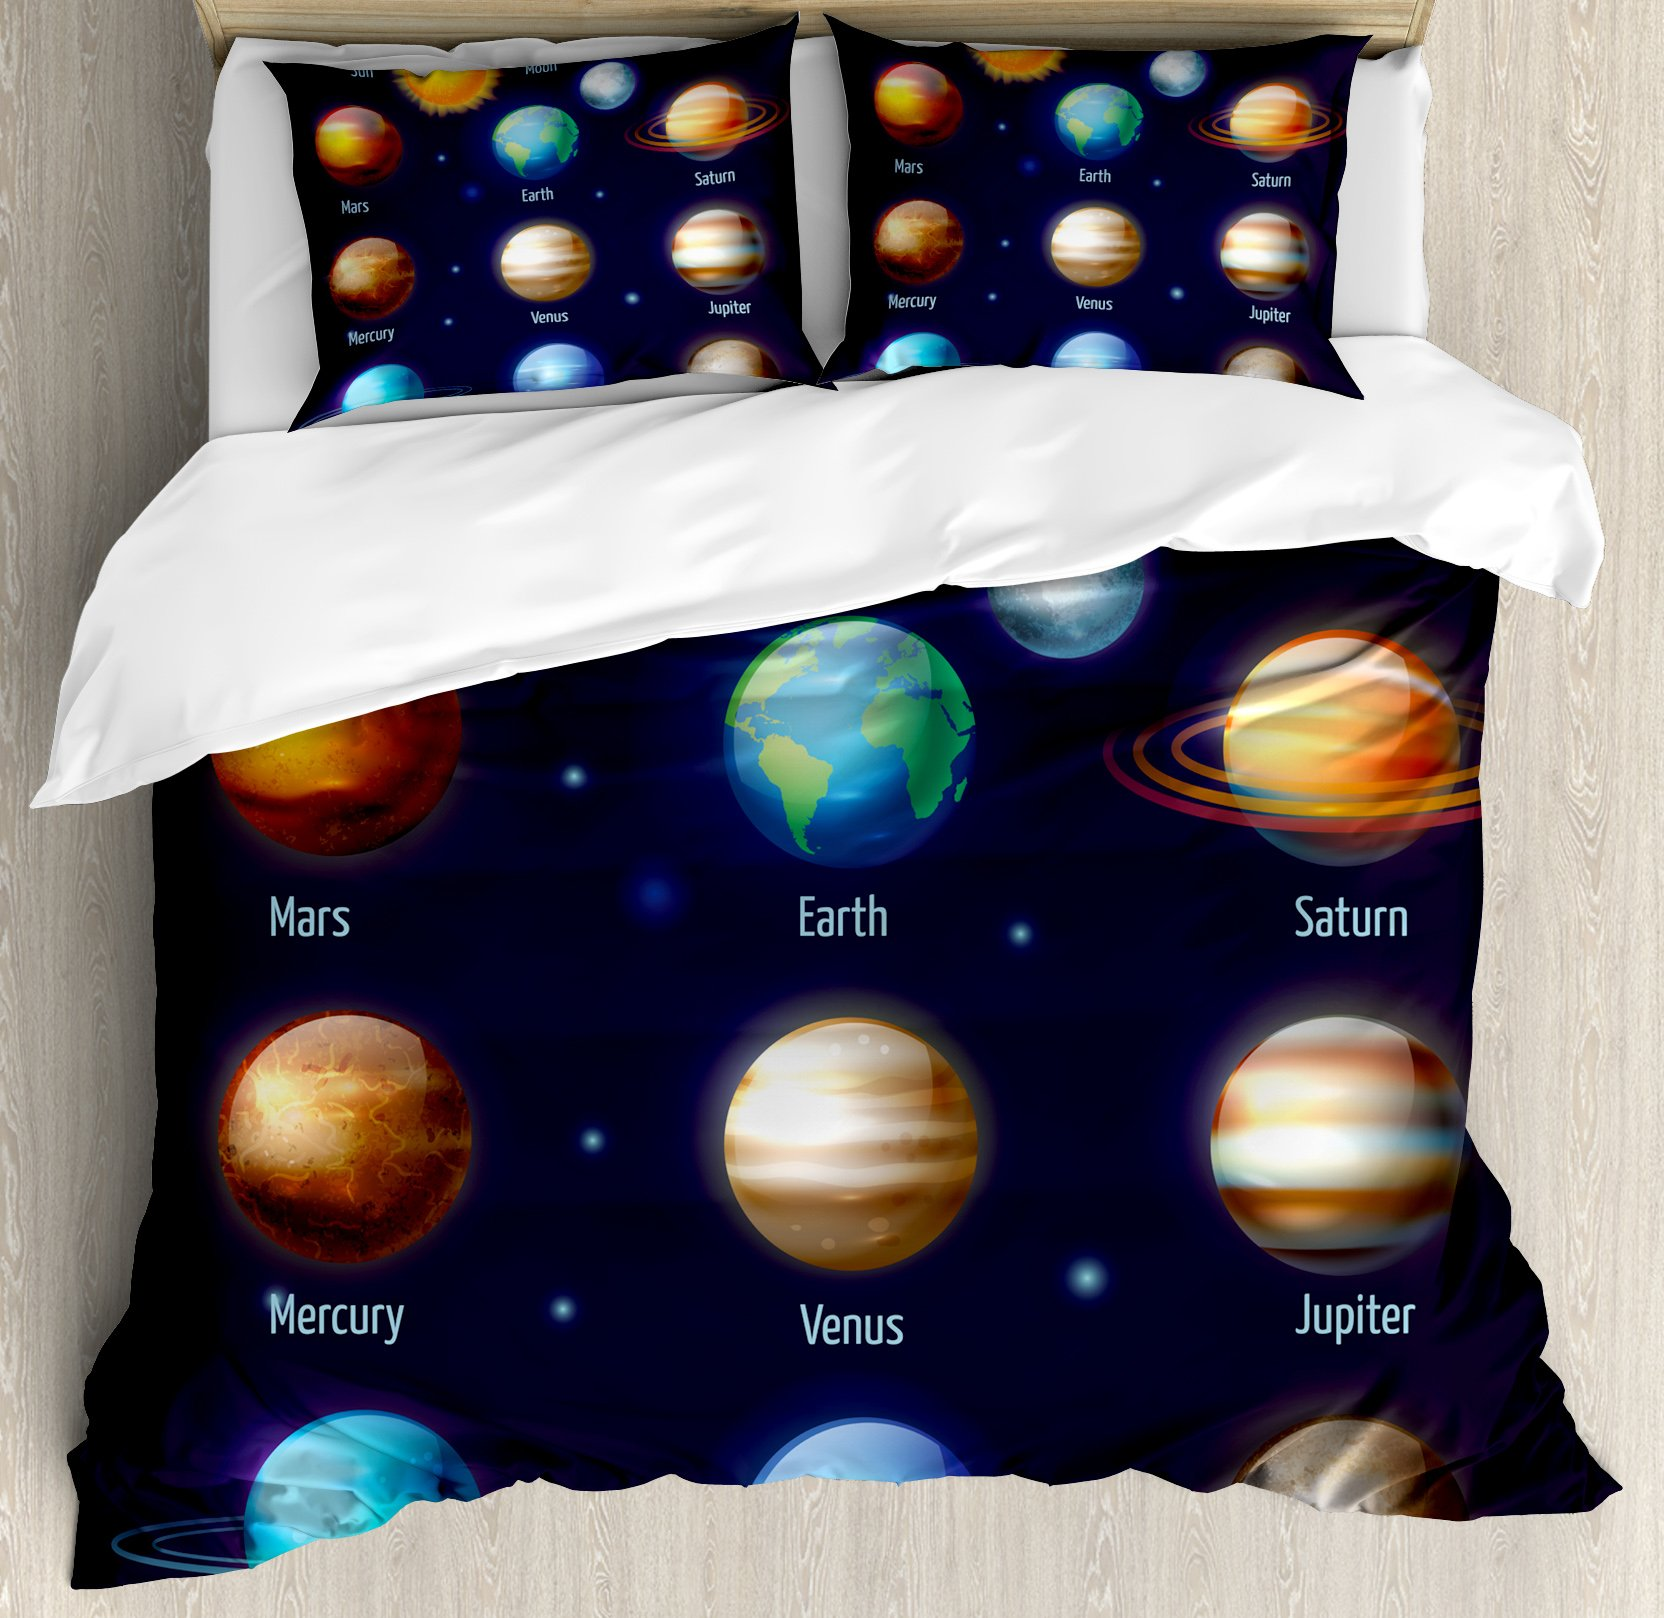 Educational Queen Size Duvet Cover Set by Ambesonne, Solar System Planets and the Sun Pictograms Set Astronomical Colorful Design, Decorative 3 Piece Bedding Set with 2 Pillow Shams, Multicolor